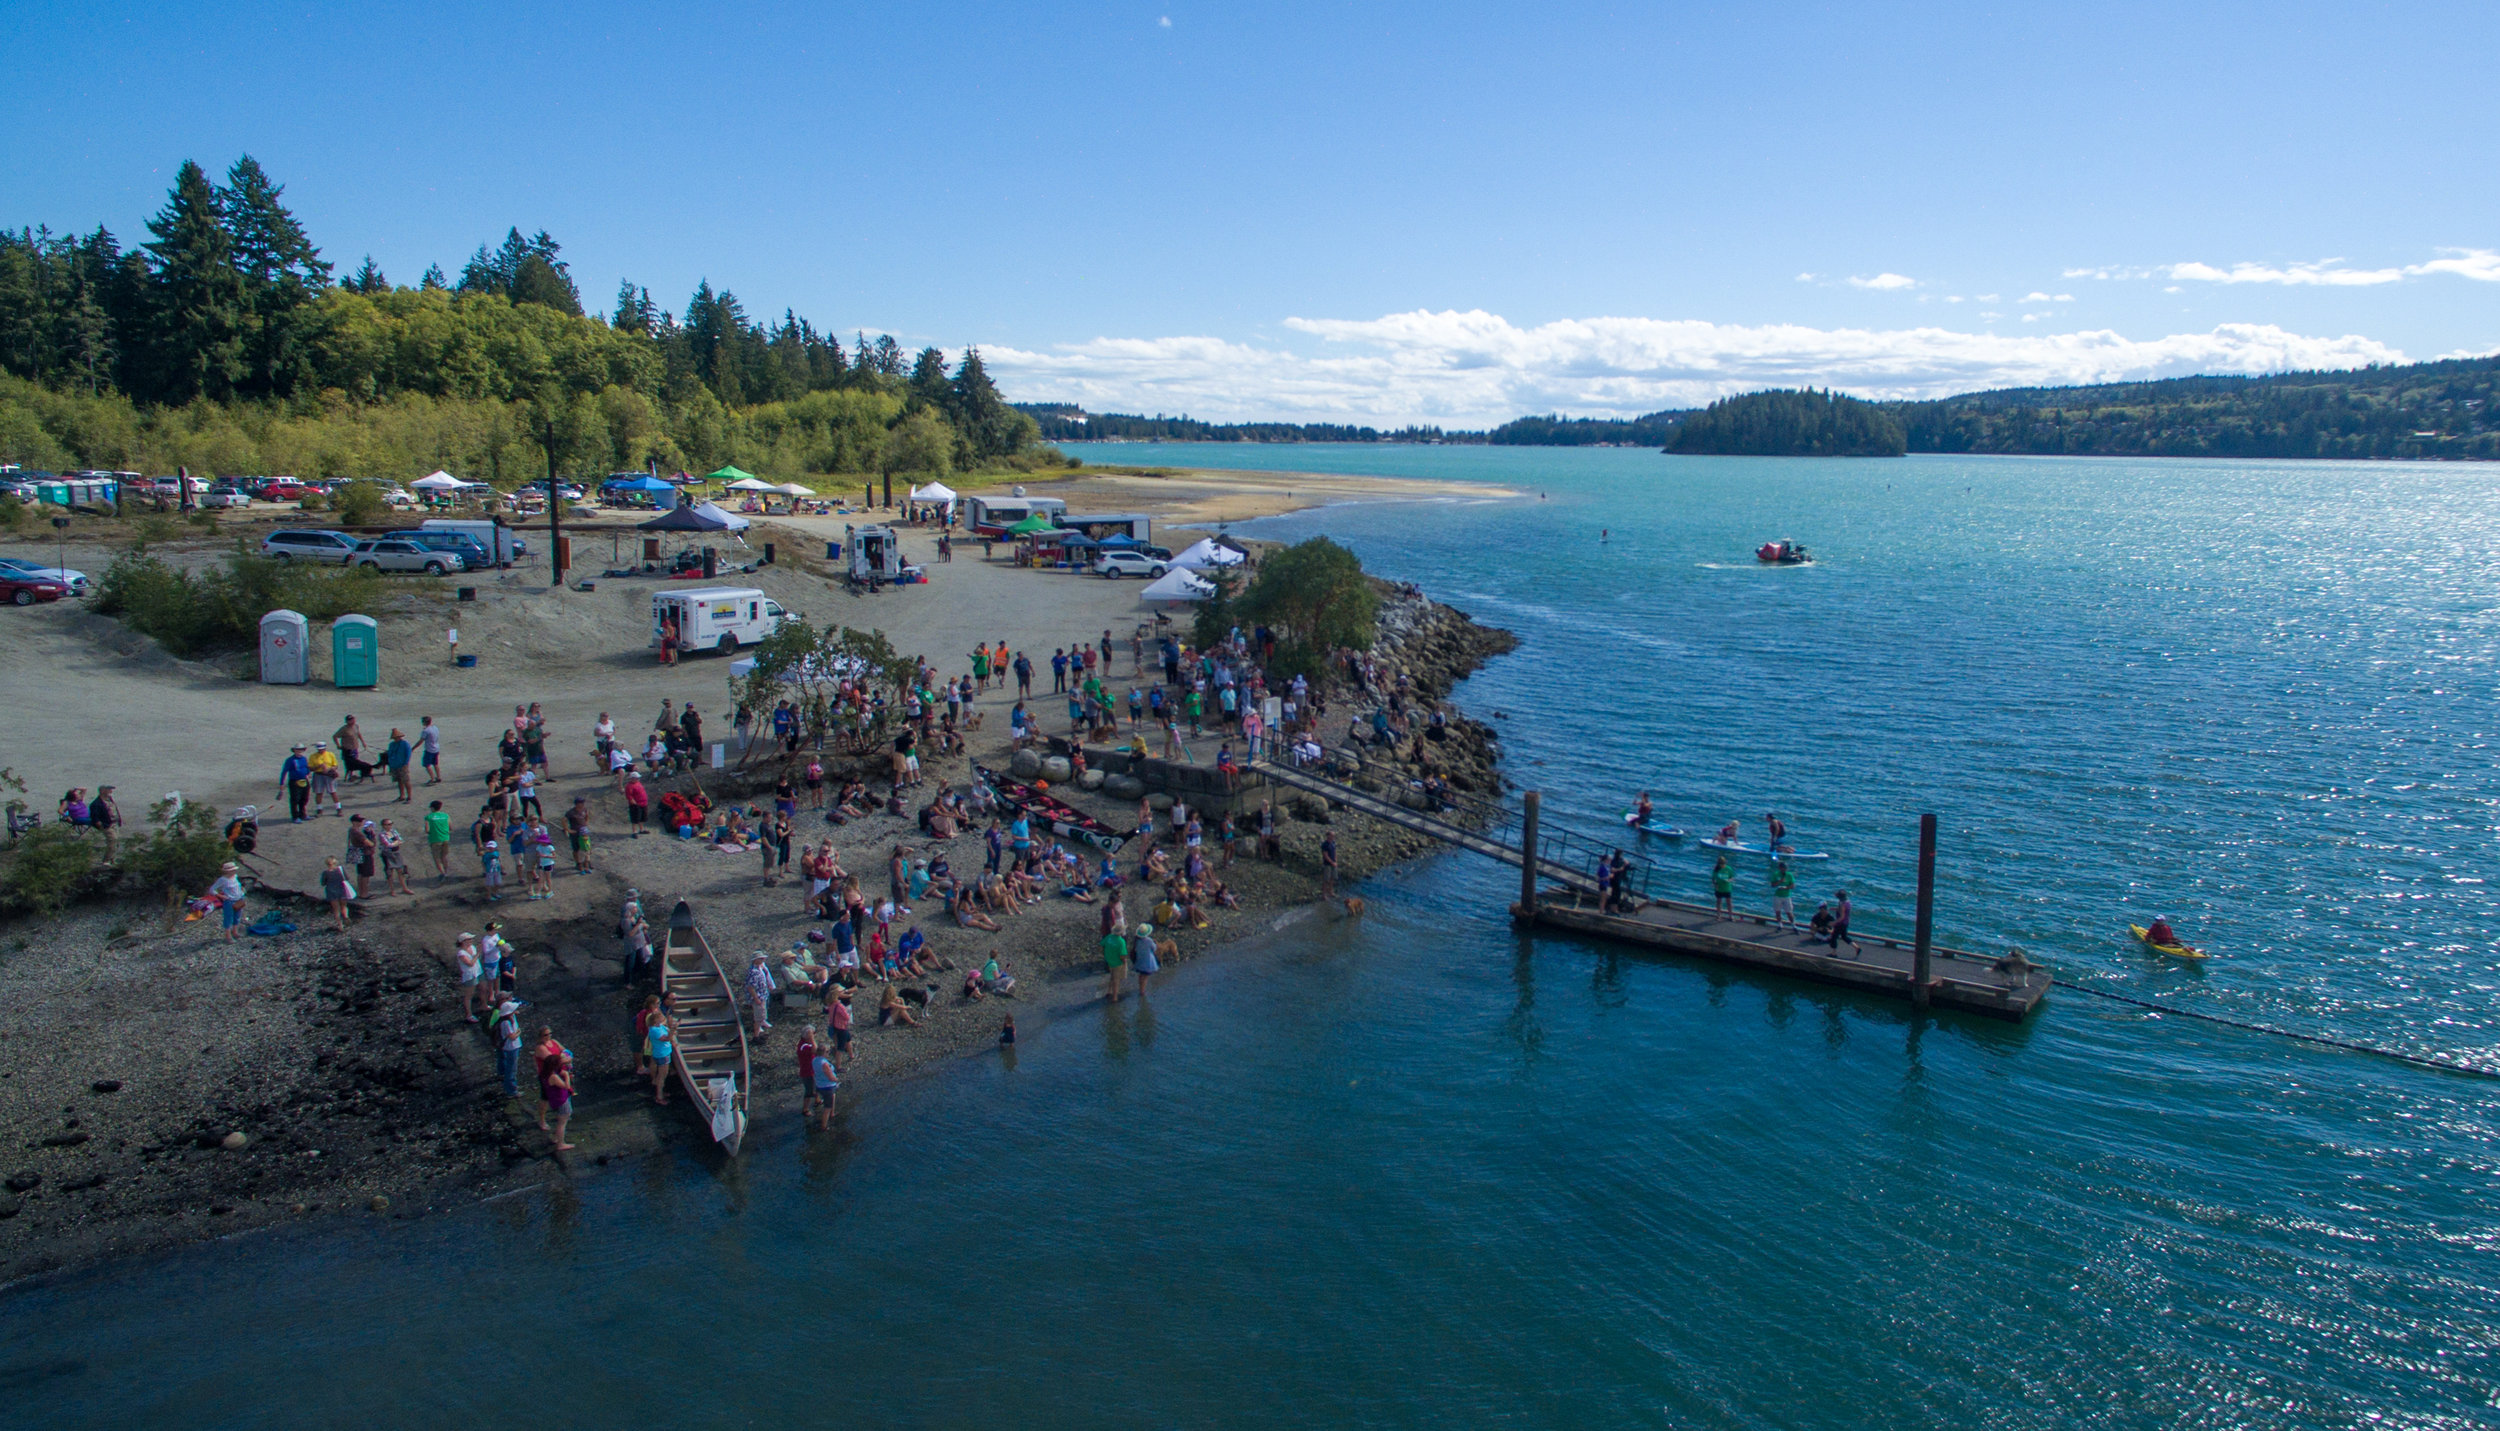 Spectators enjoy a sunny day on the beach while watching the Dog Dock Diving Contest.